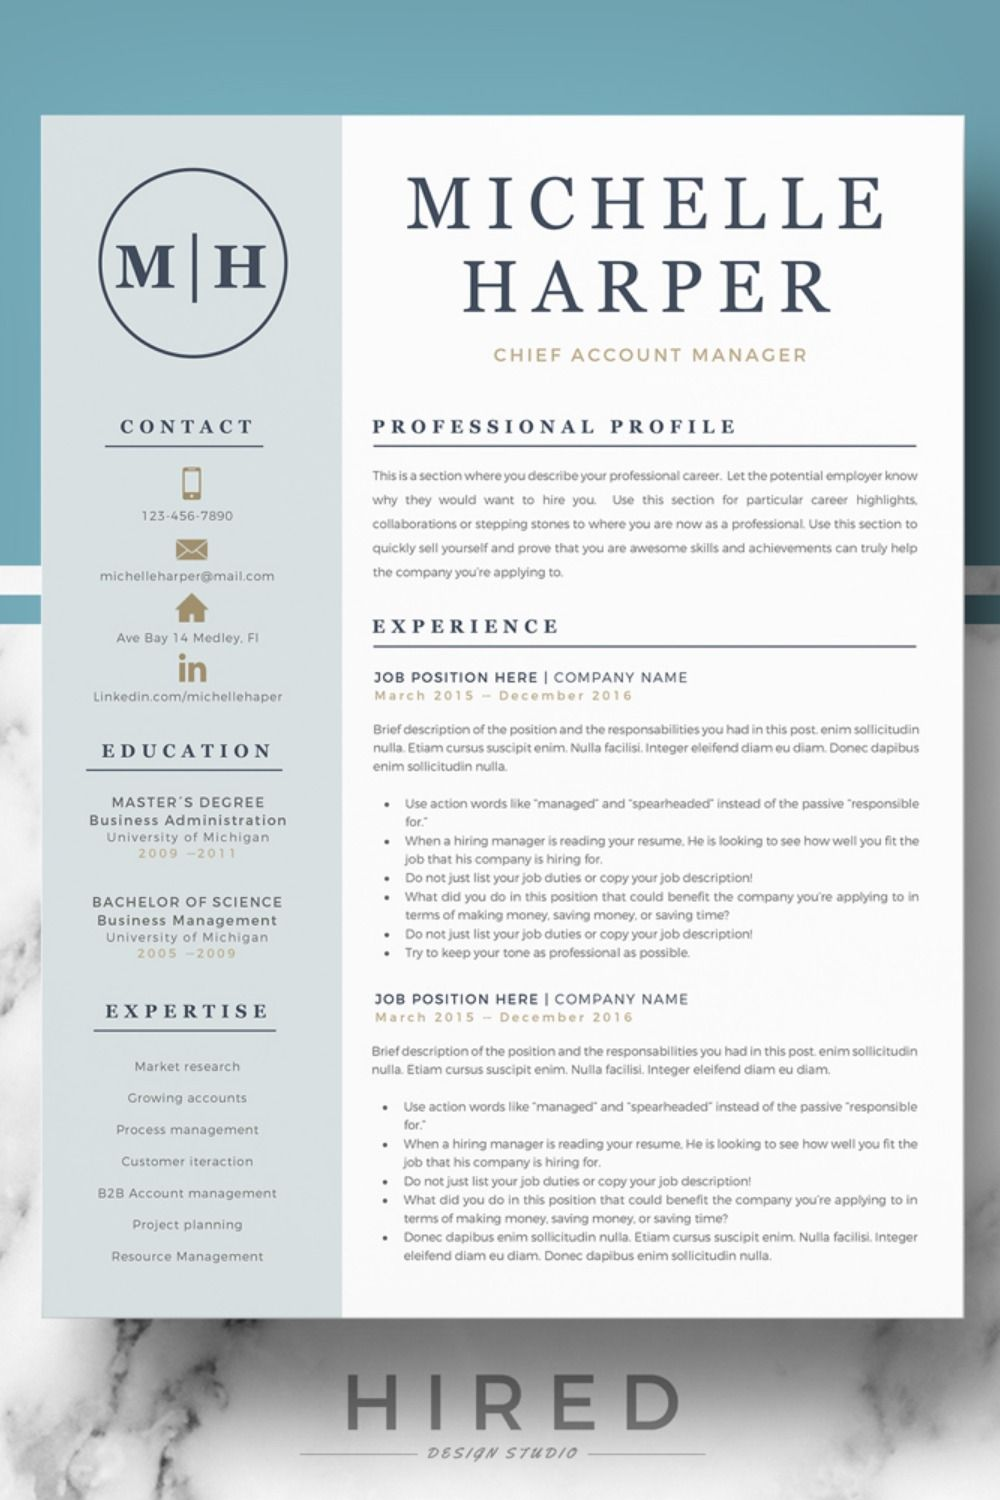 Professional Resume Cv Design Template Matching Cover Format References Page Graphic Design Resume Resume Design Creative Resume Design